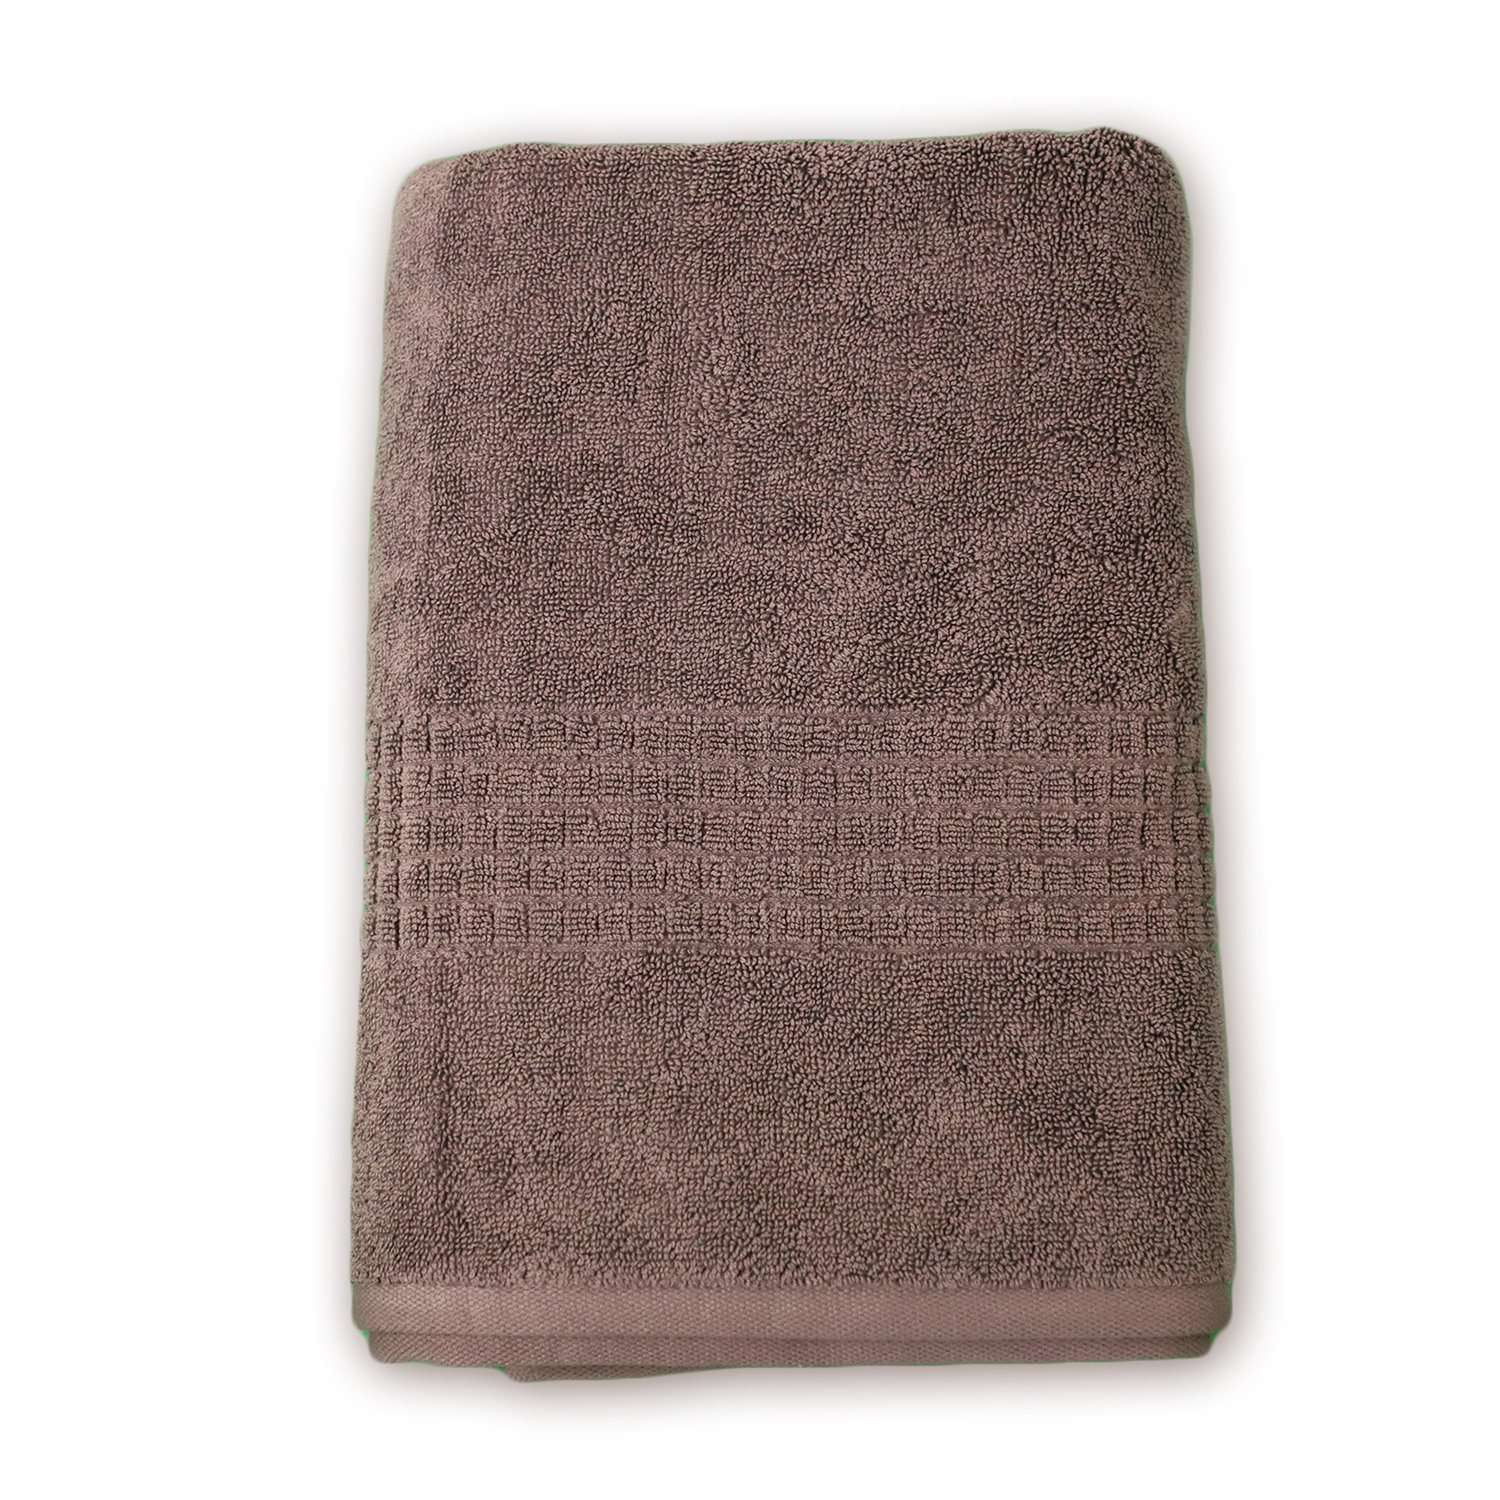 Queensberry Luxury Egyptian Cotton Bath Towels